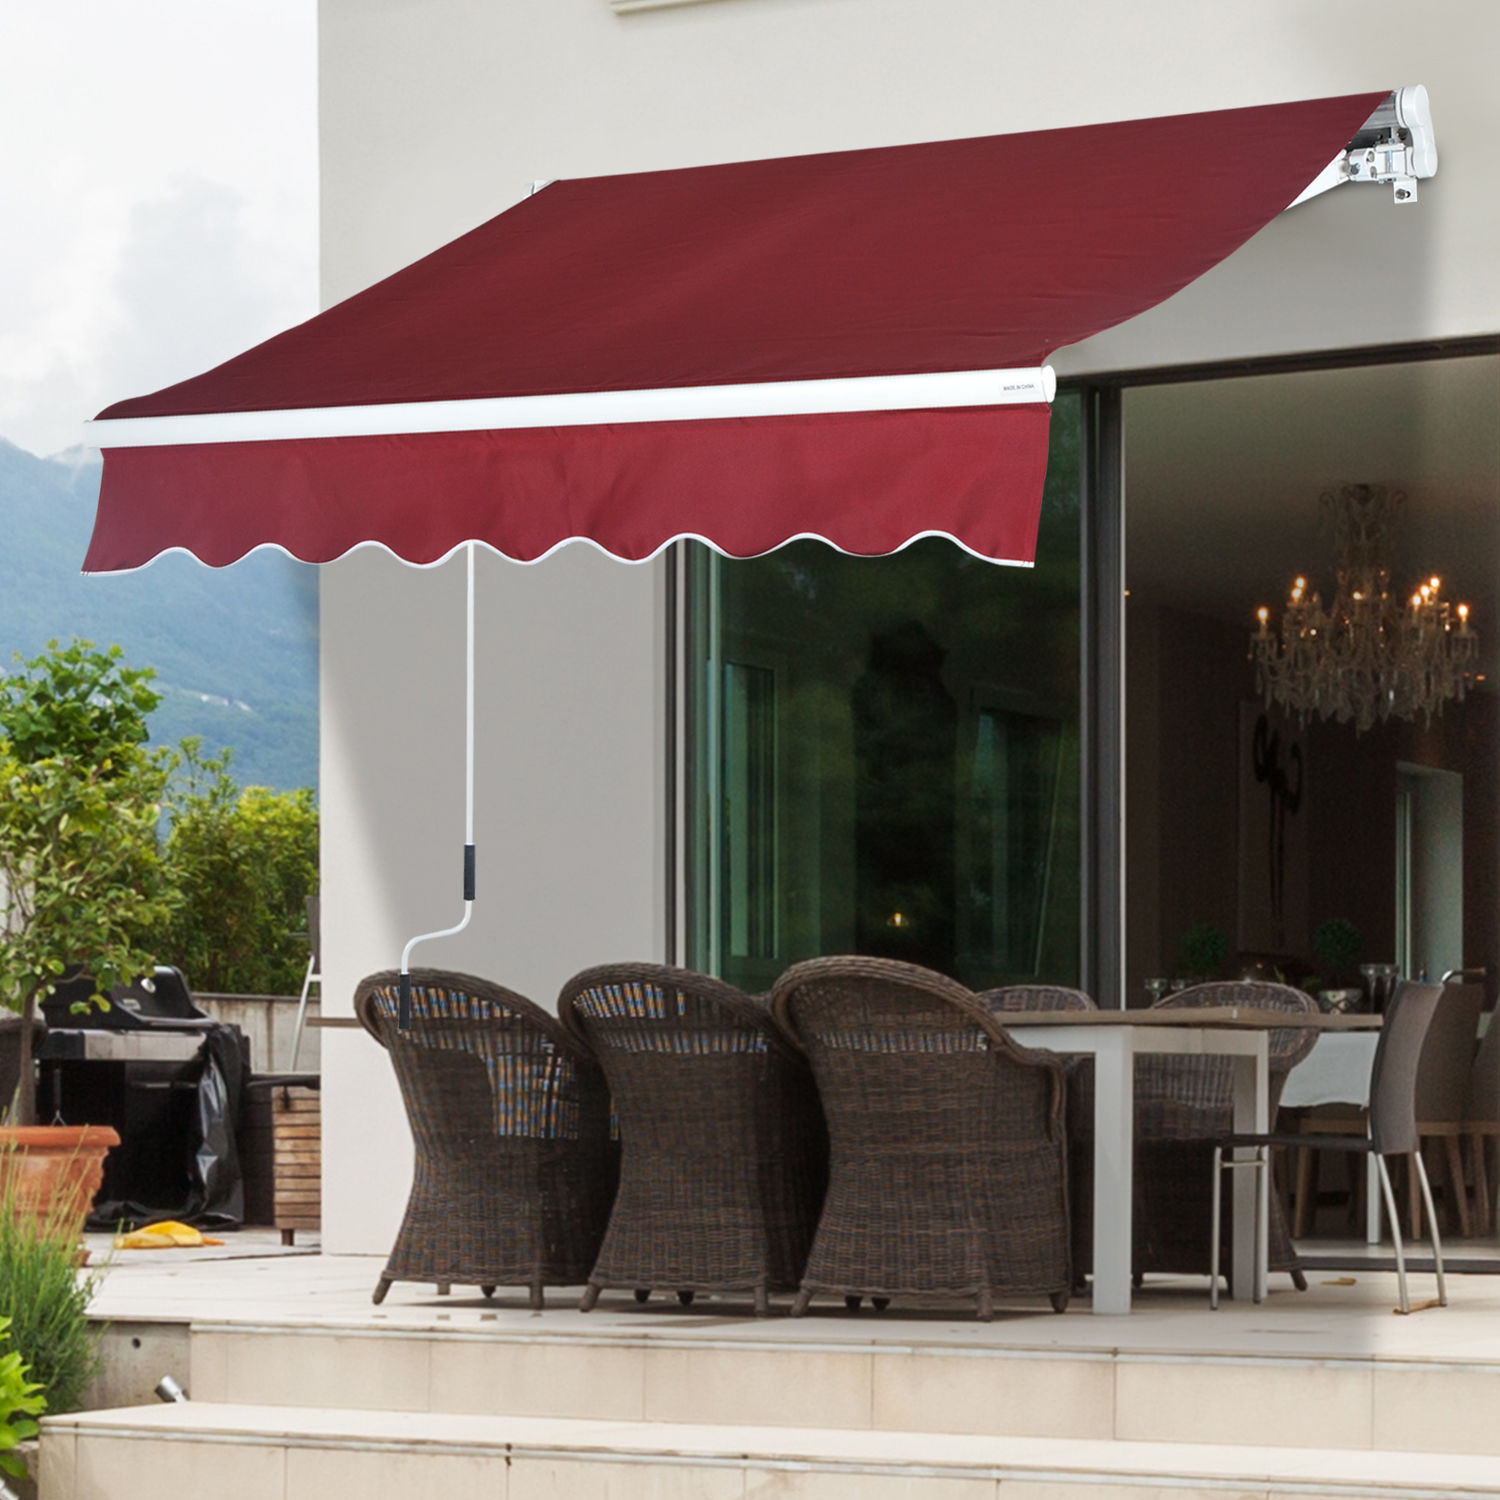 Outdoor 8'x7'/13'x8' Patio Awning Sun Shade Canopy Shelter ...